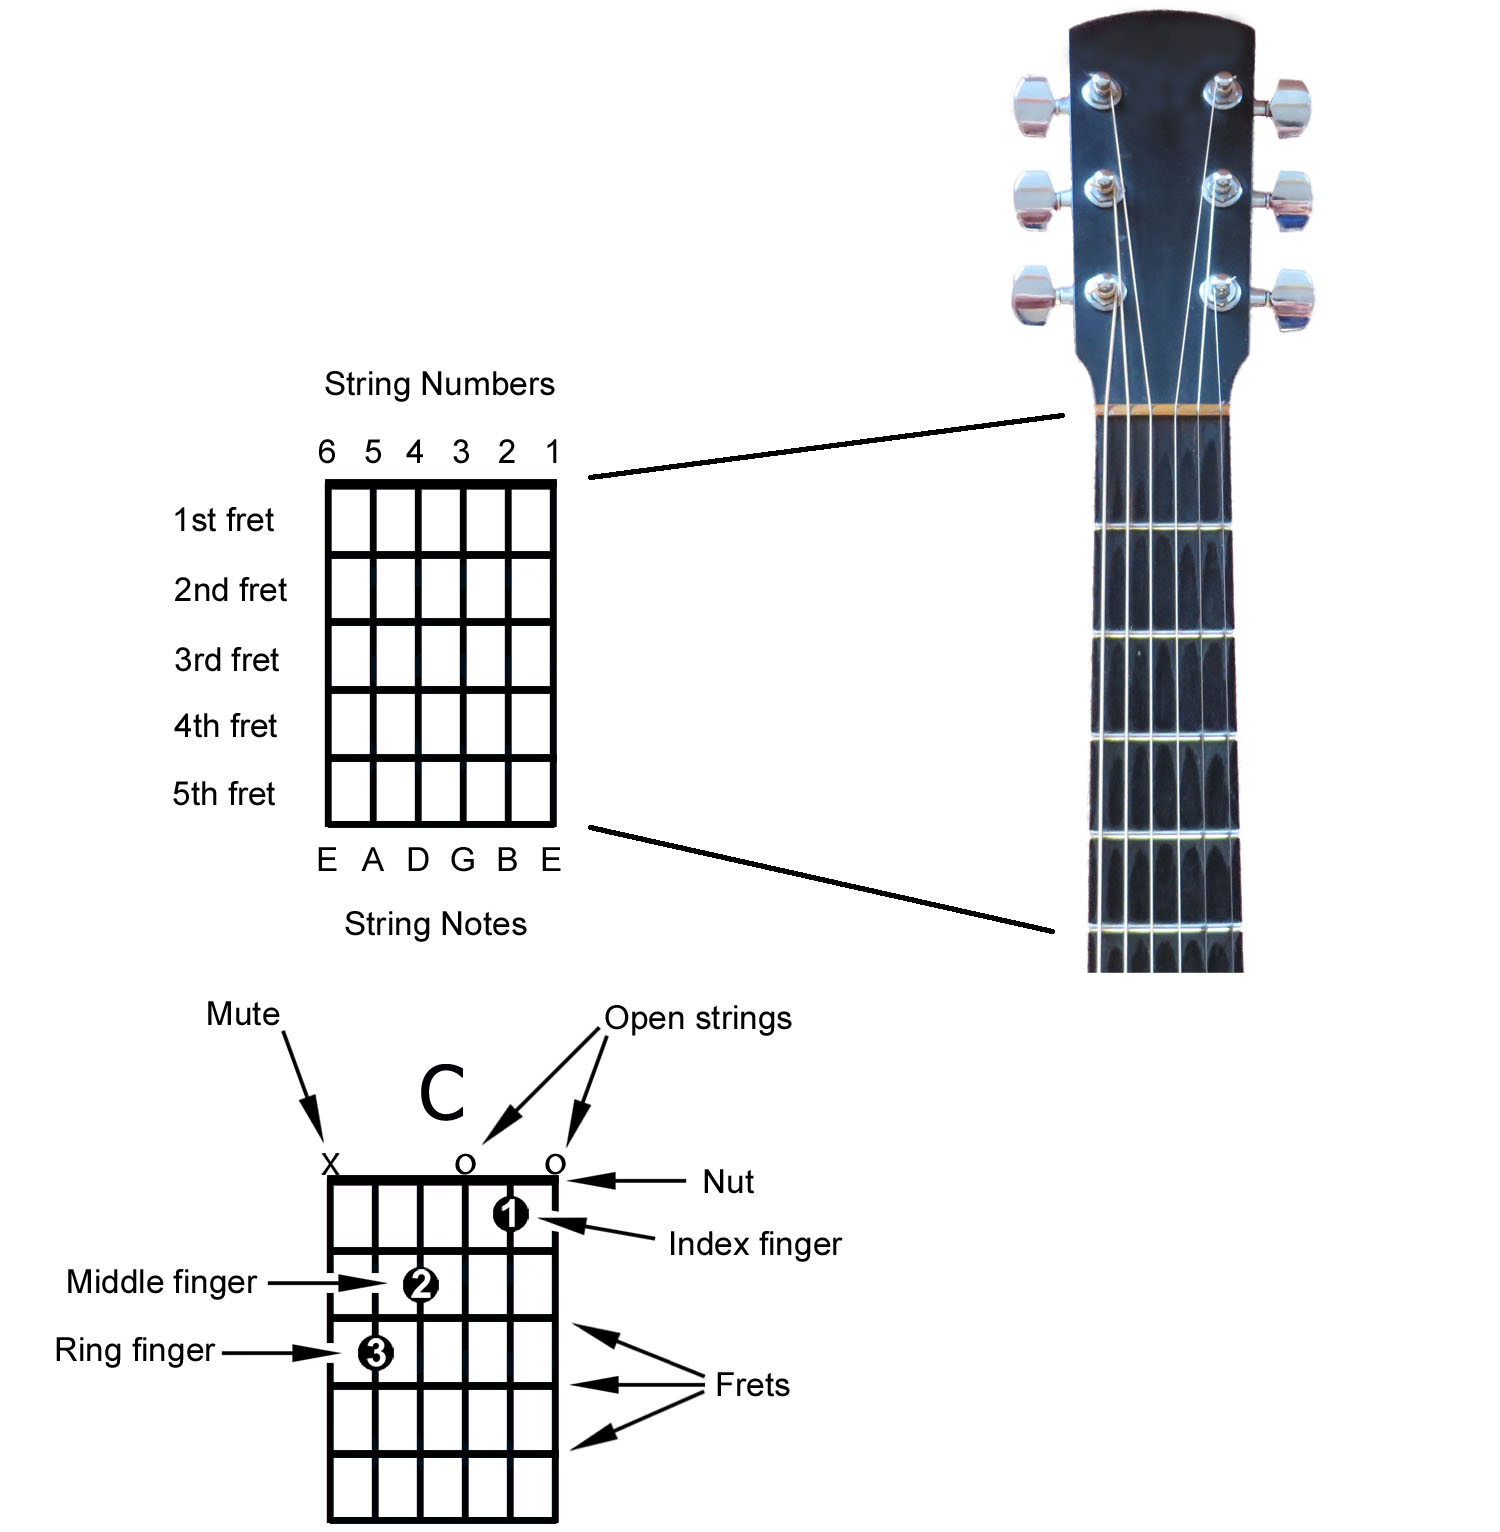 How To Read A Chord Diagram And Other Notation